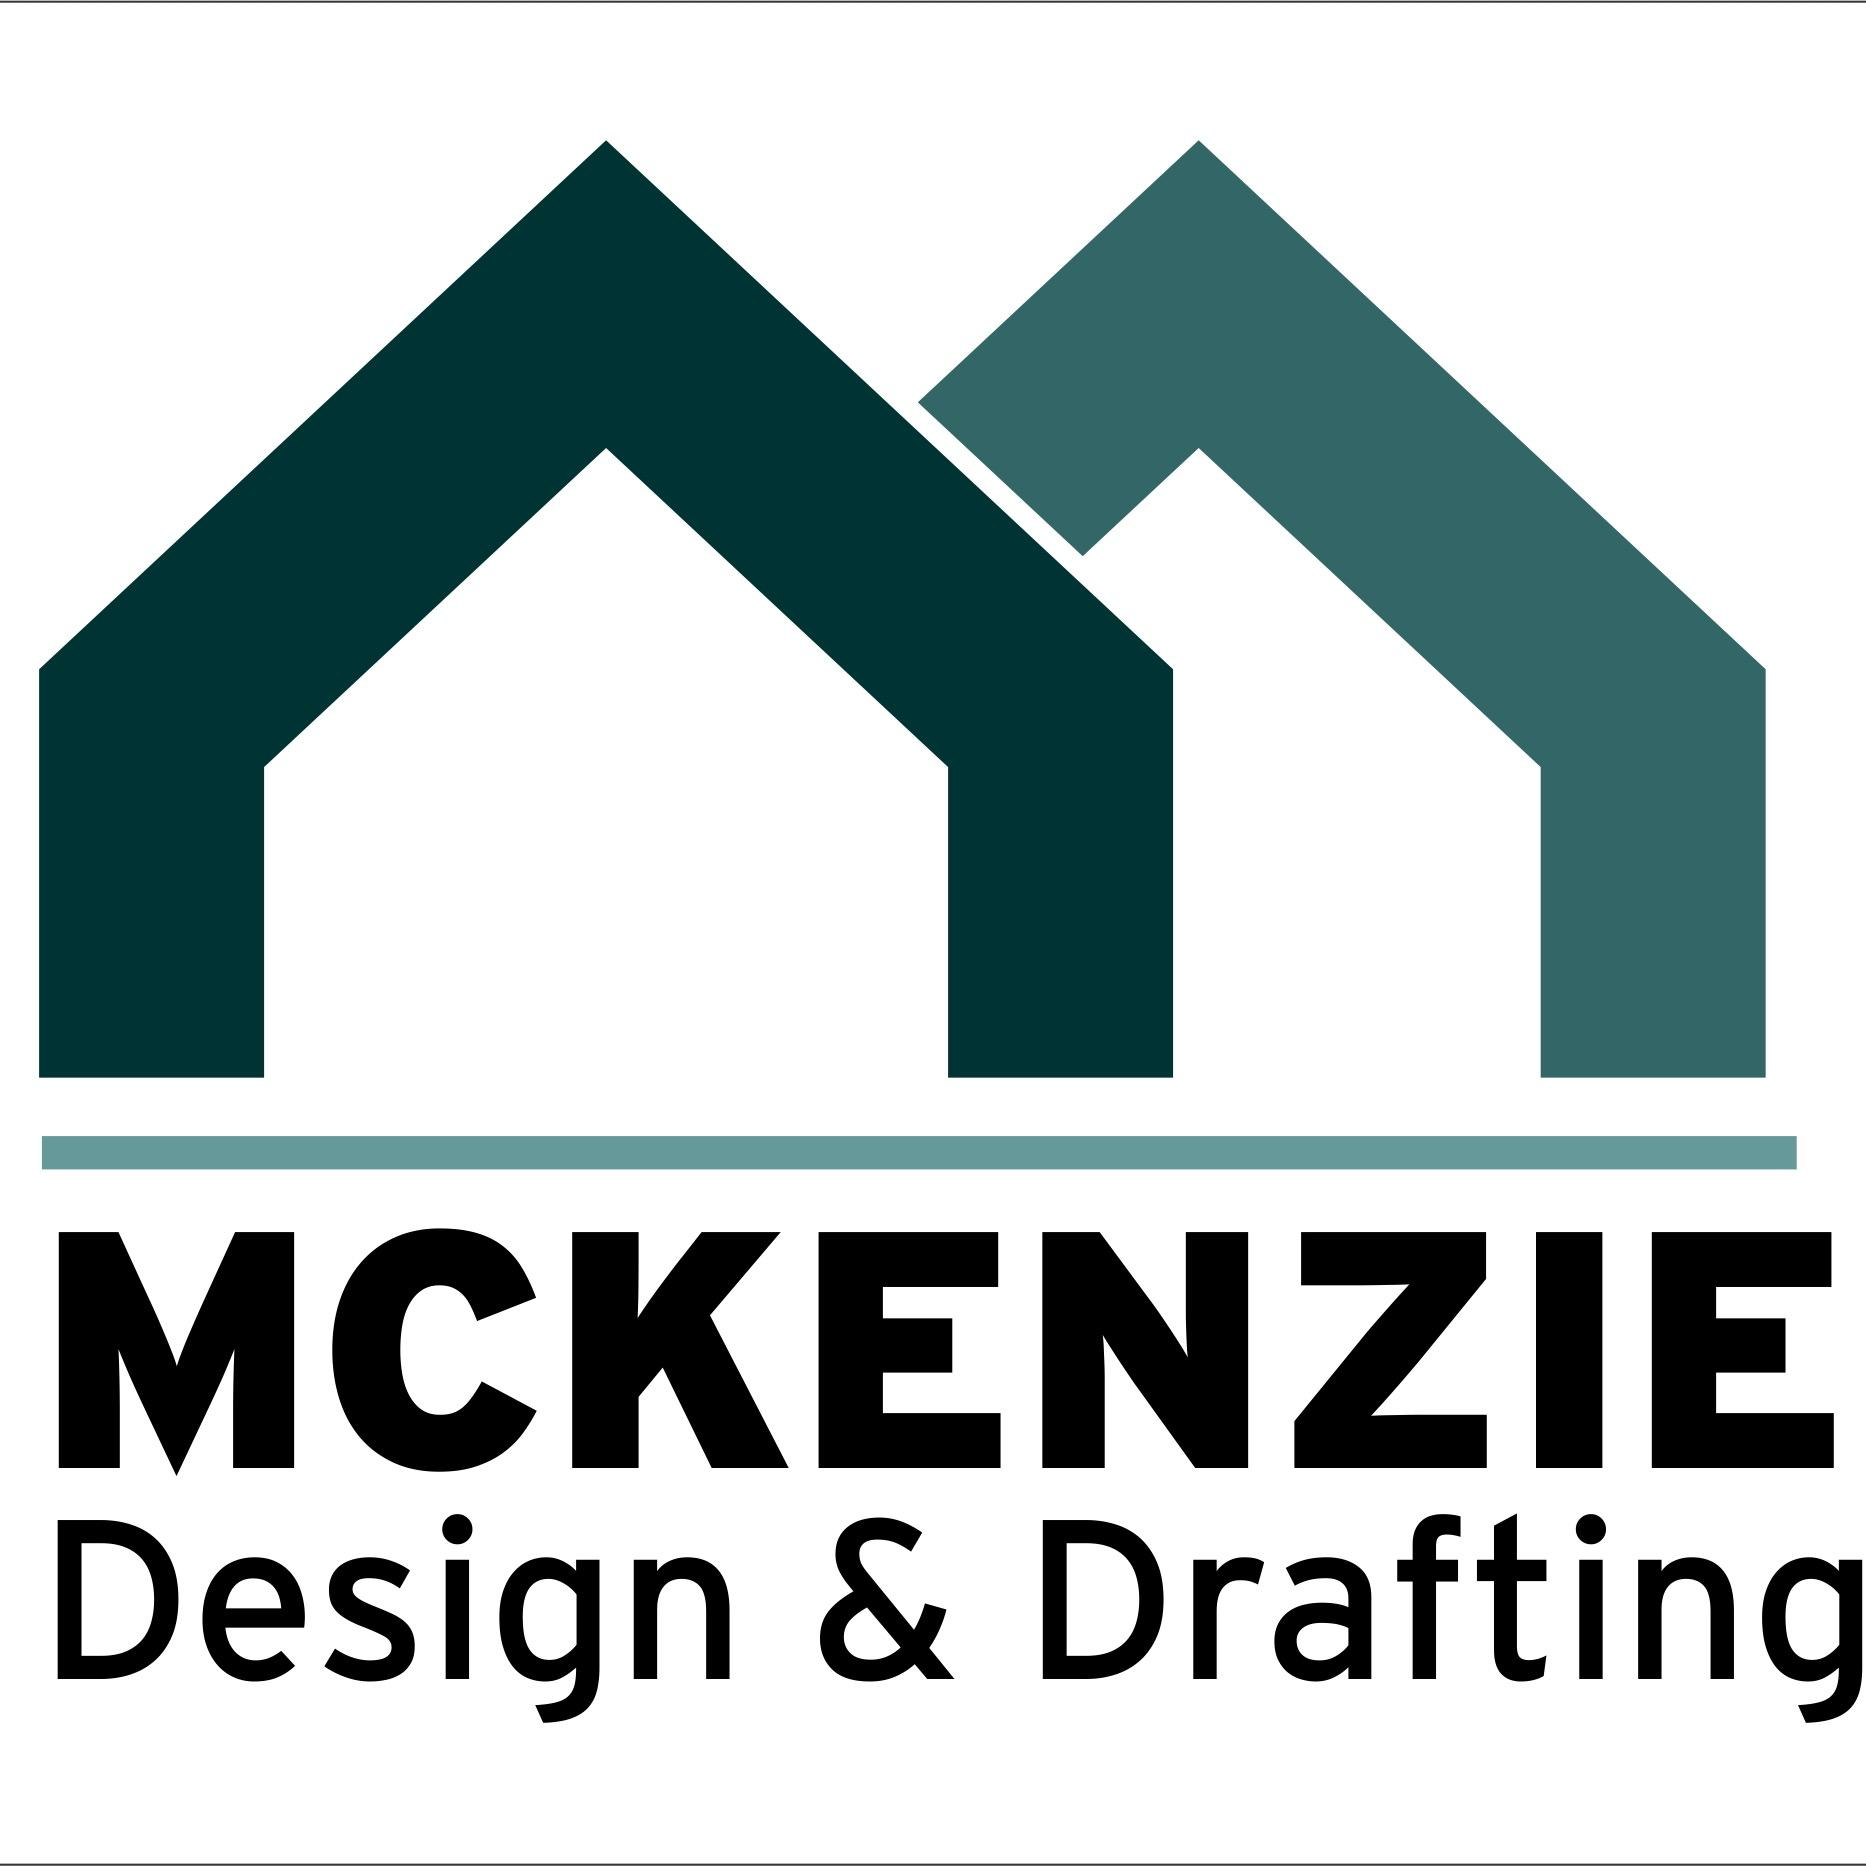 Mckenzie design drafting llc eugene oregon or for Local residential architects near me